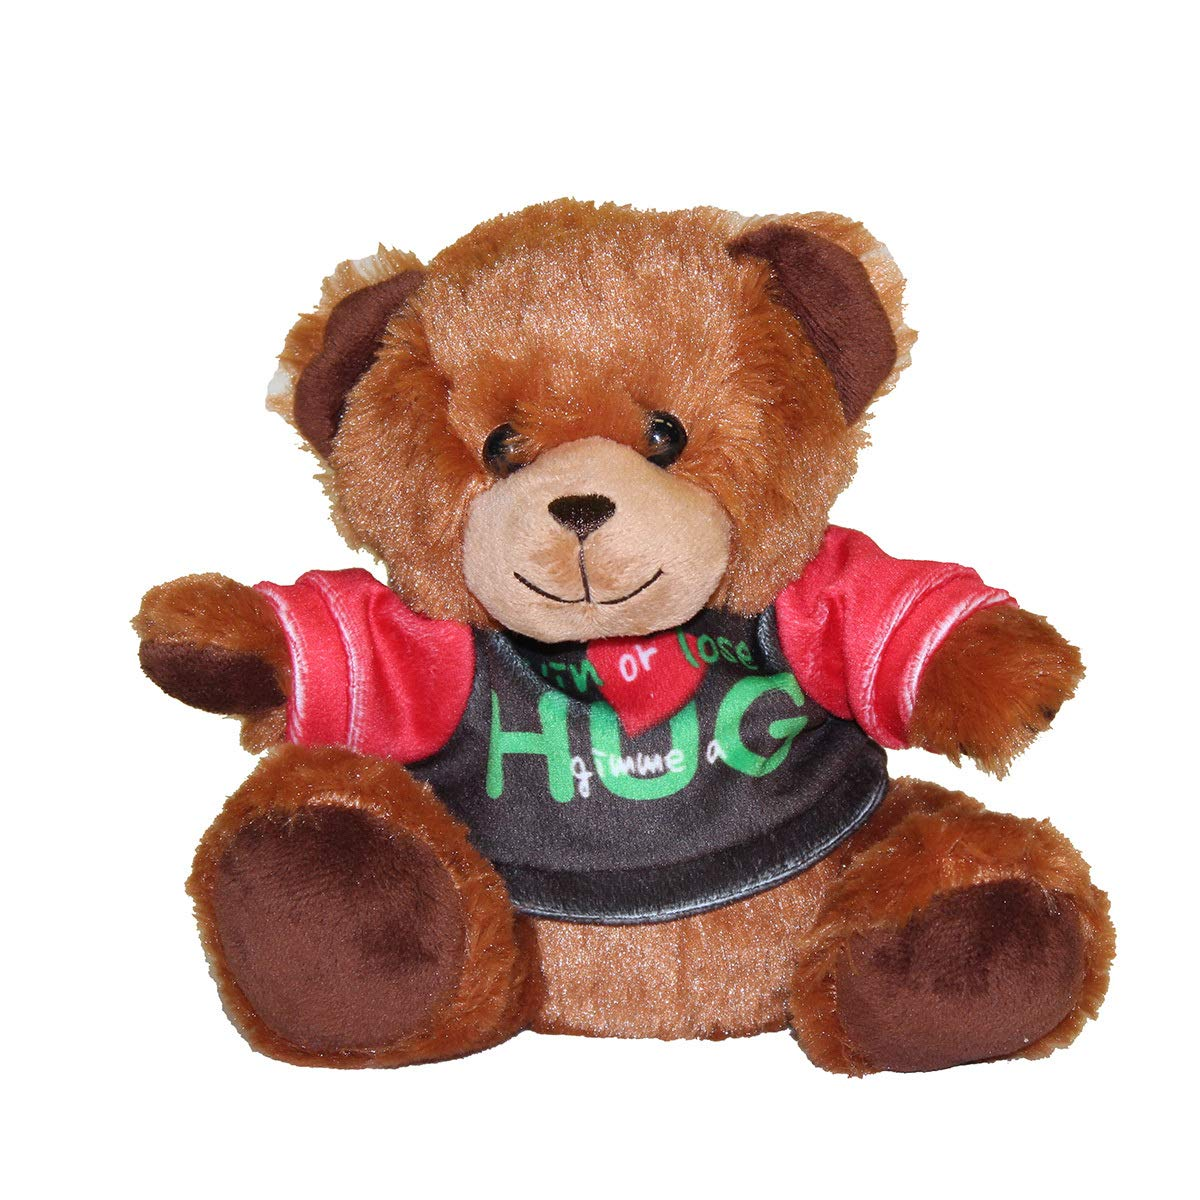 Oncourt Offcourt Tennis Teddy Bear